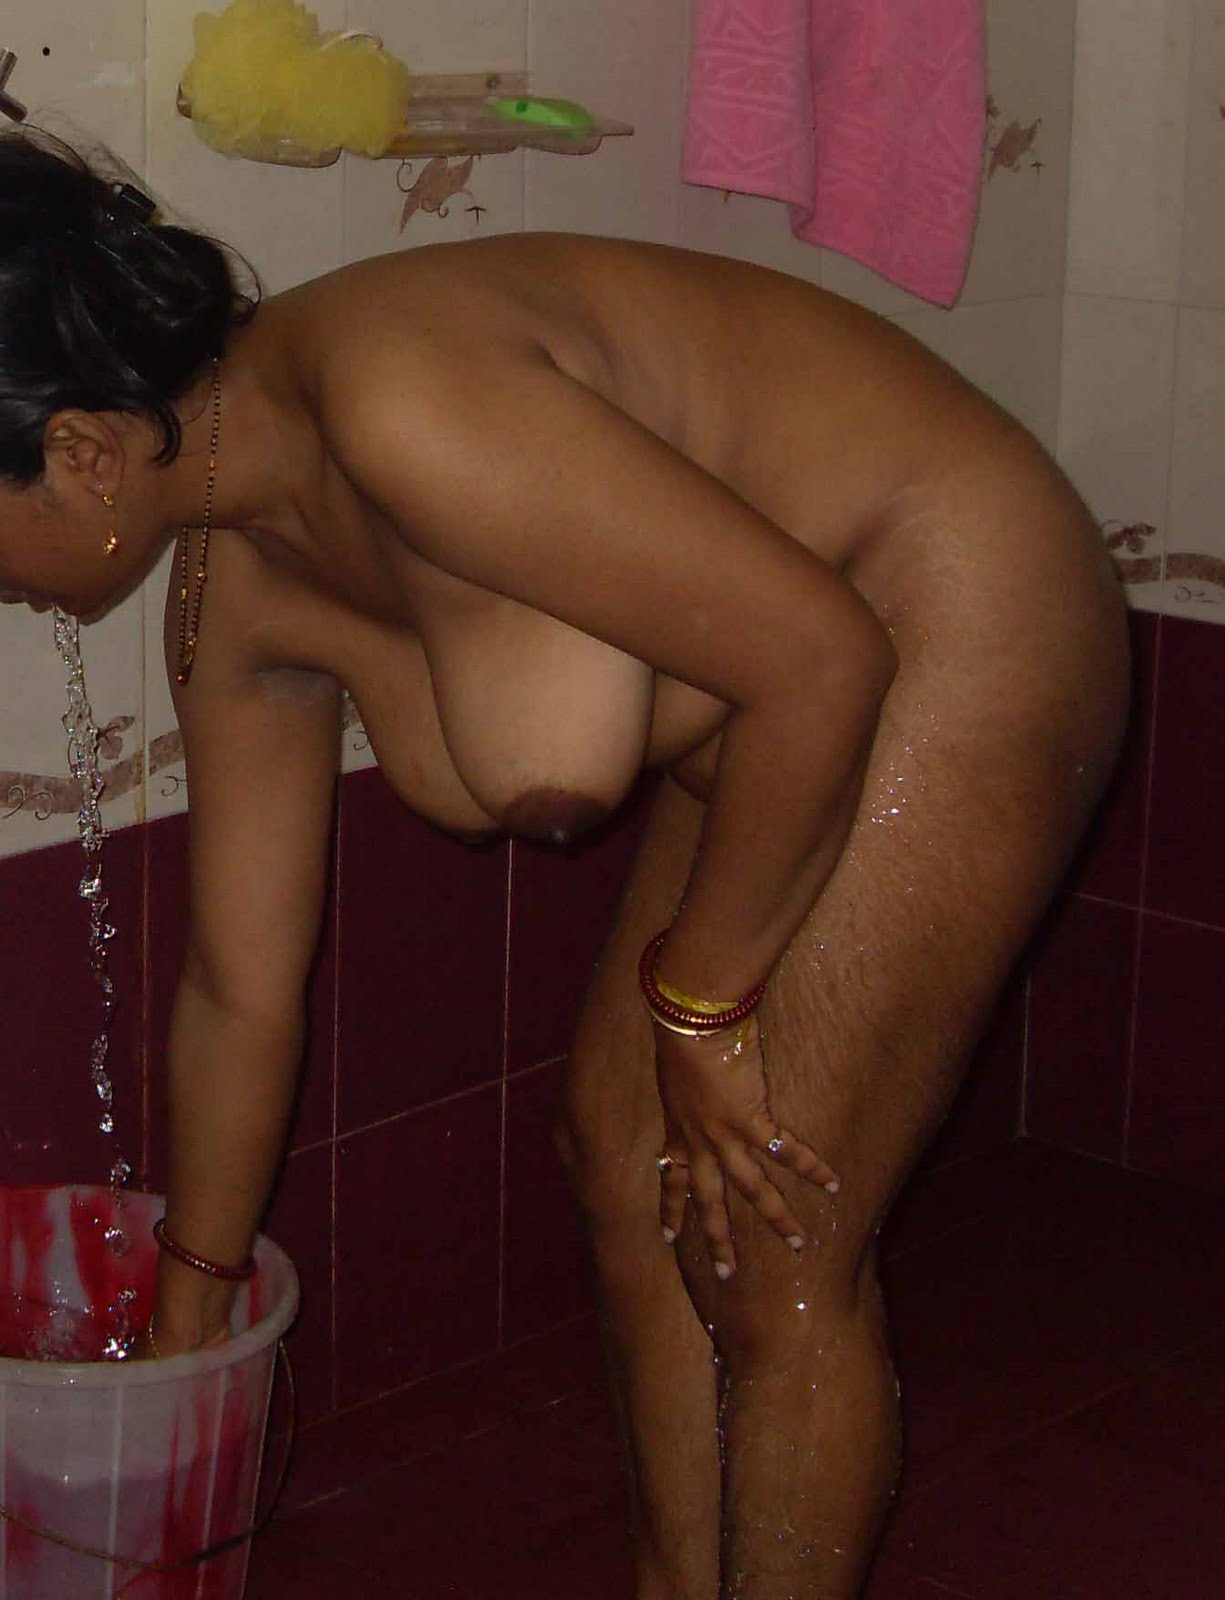 Agree, very Nude indian girls bathing